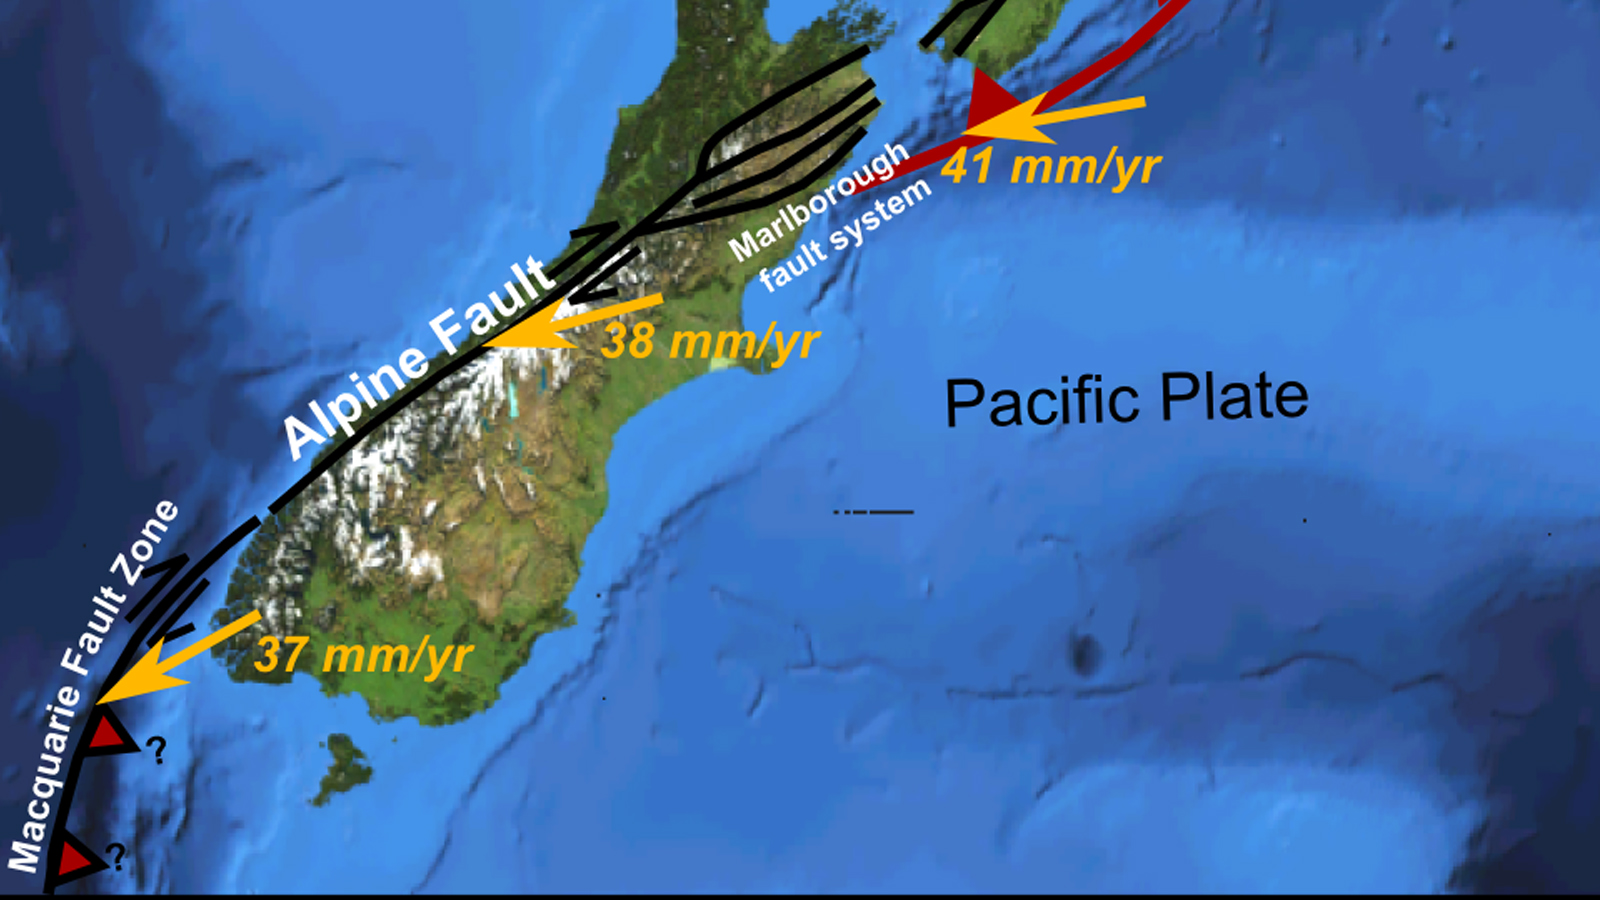 Main fault zones associated with the plate boundary in New Zealand with displacement vectors relative to the Australian plate